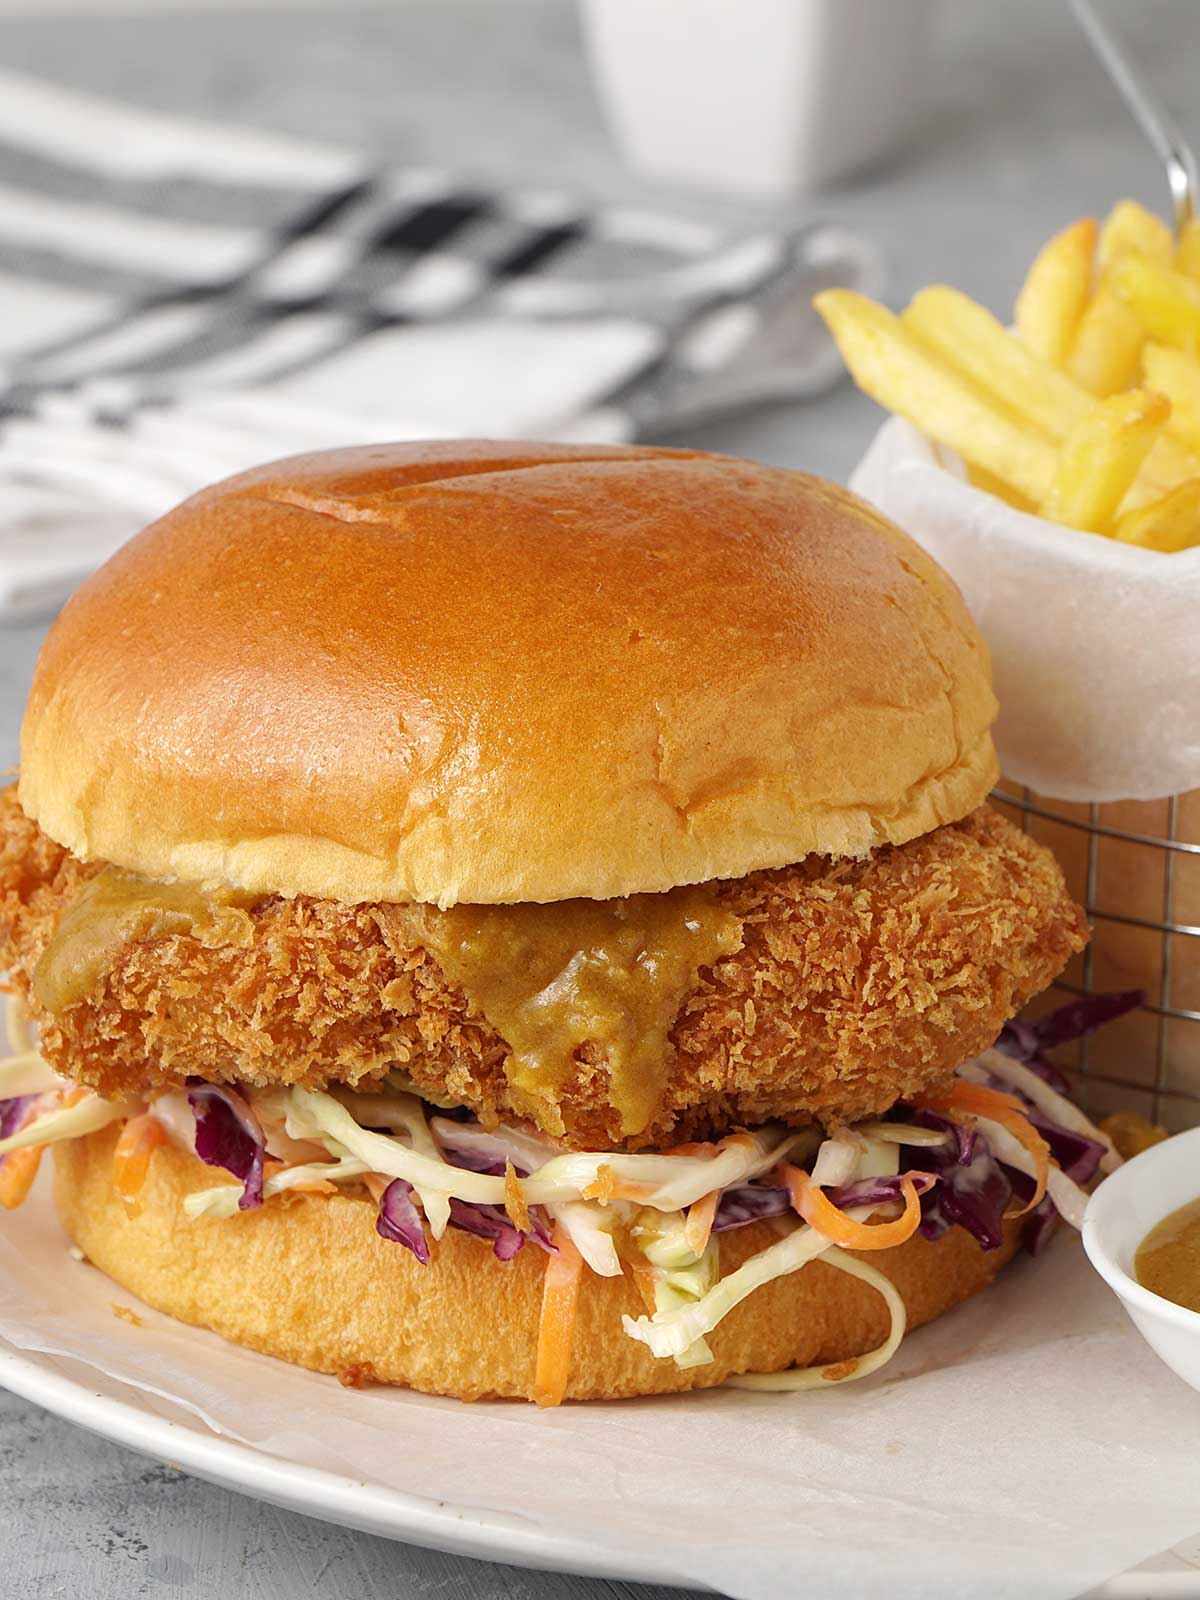 burger on the plate with a small bowl of curry sauce and chip basket in the background.